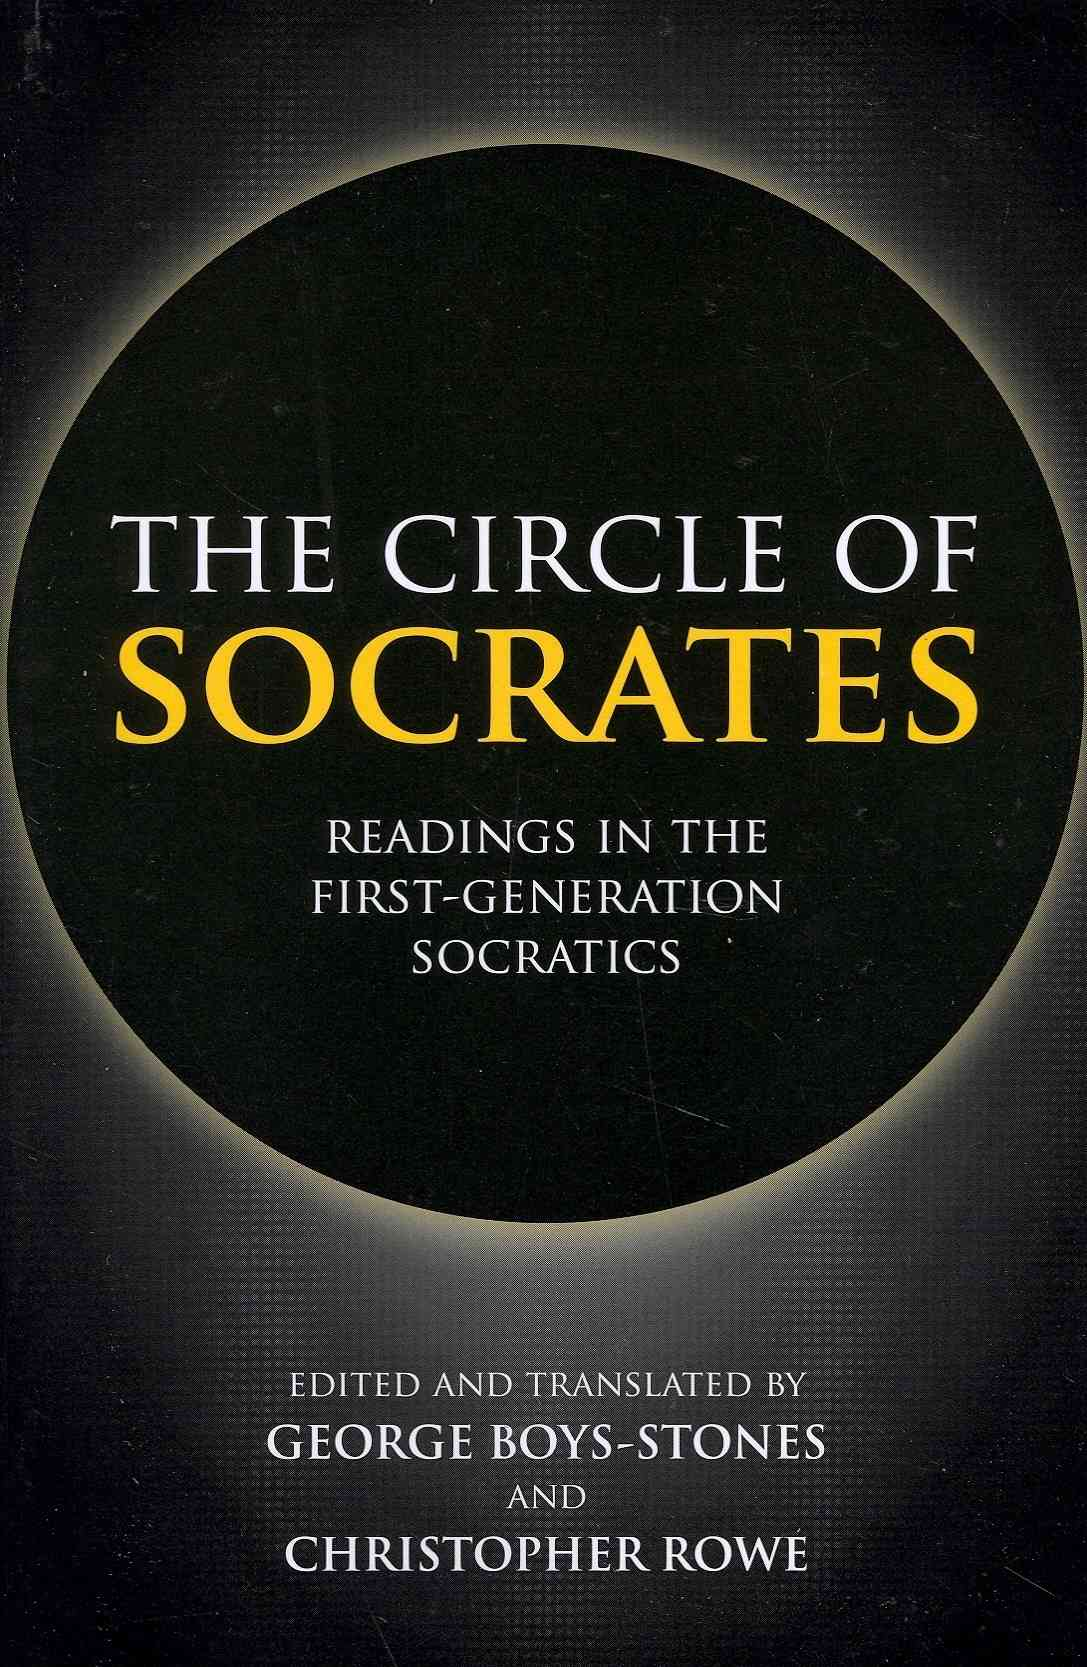 The Circle of Socrates By Rowe, Christopher (EDT)/ Boys-stones, George (EDT)/ Boys-stones, George (TRN)/ Rowe, Christopher (TRN)